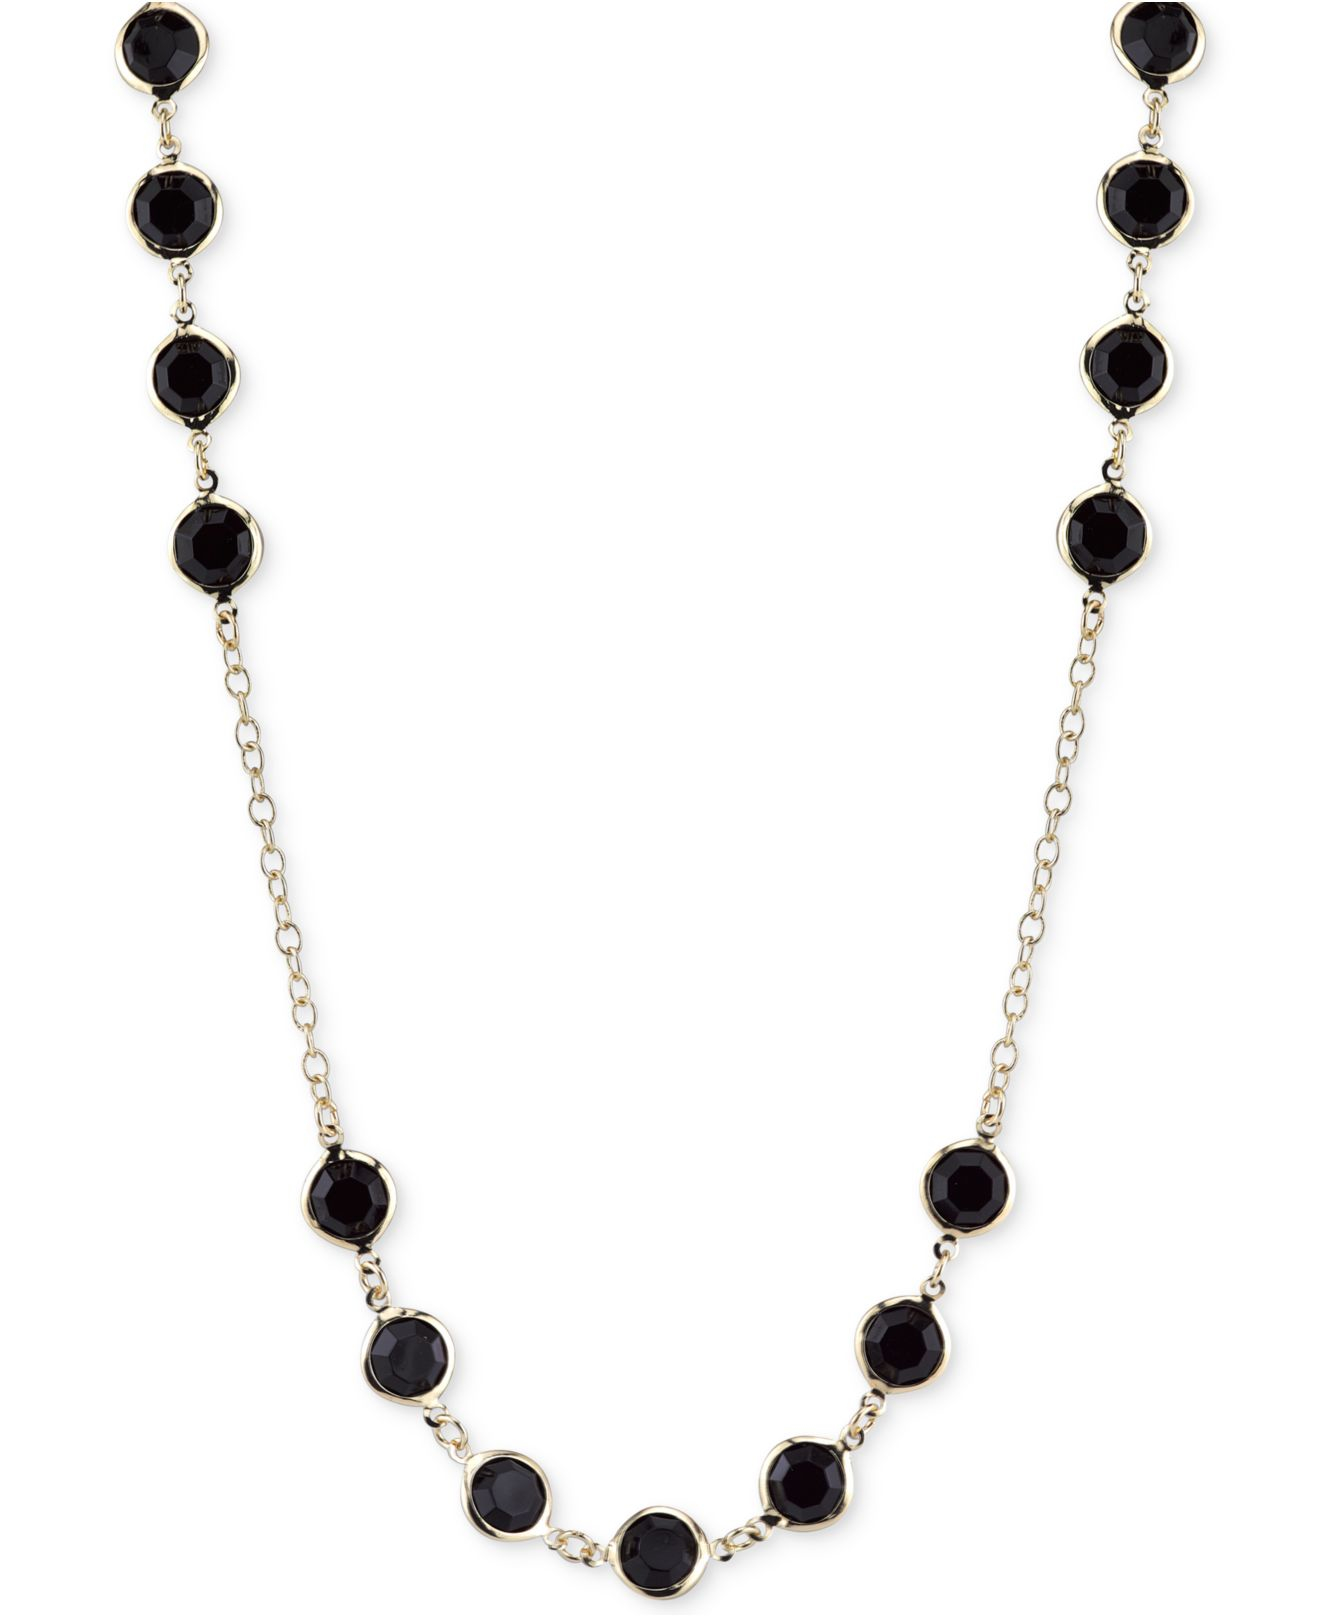 2028 Gold-tone Jet Stone Long Length Necklace in Black